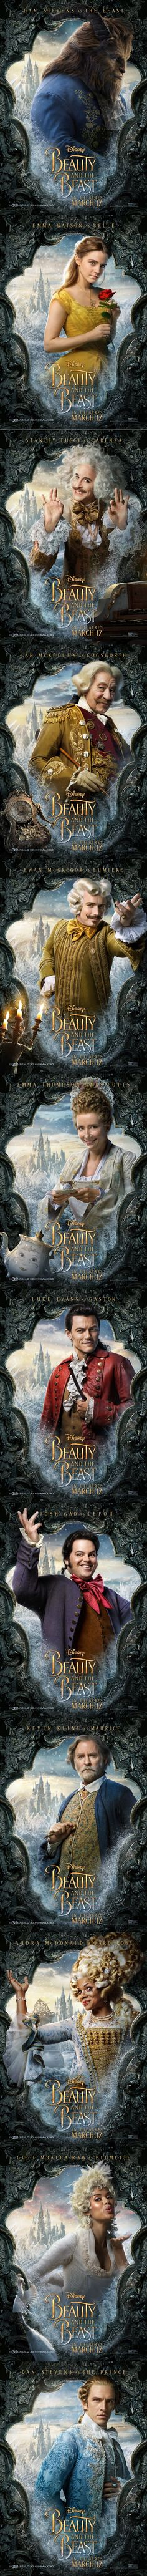 New 'Beauty and the Beast' character posters! I wouldn't be surprised if Disney figures out a way to make a sequel. Walt Disney, Disney Pixar, Bella Disney, Disney Dream, Disney And Dreamworks, Disney Animation, Disney Love, Disney Magic, Emma Watson